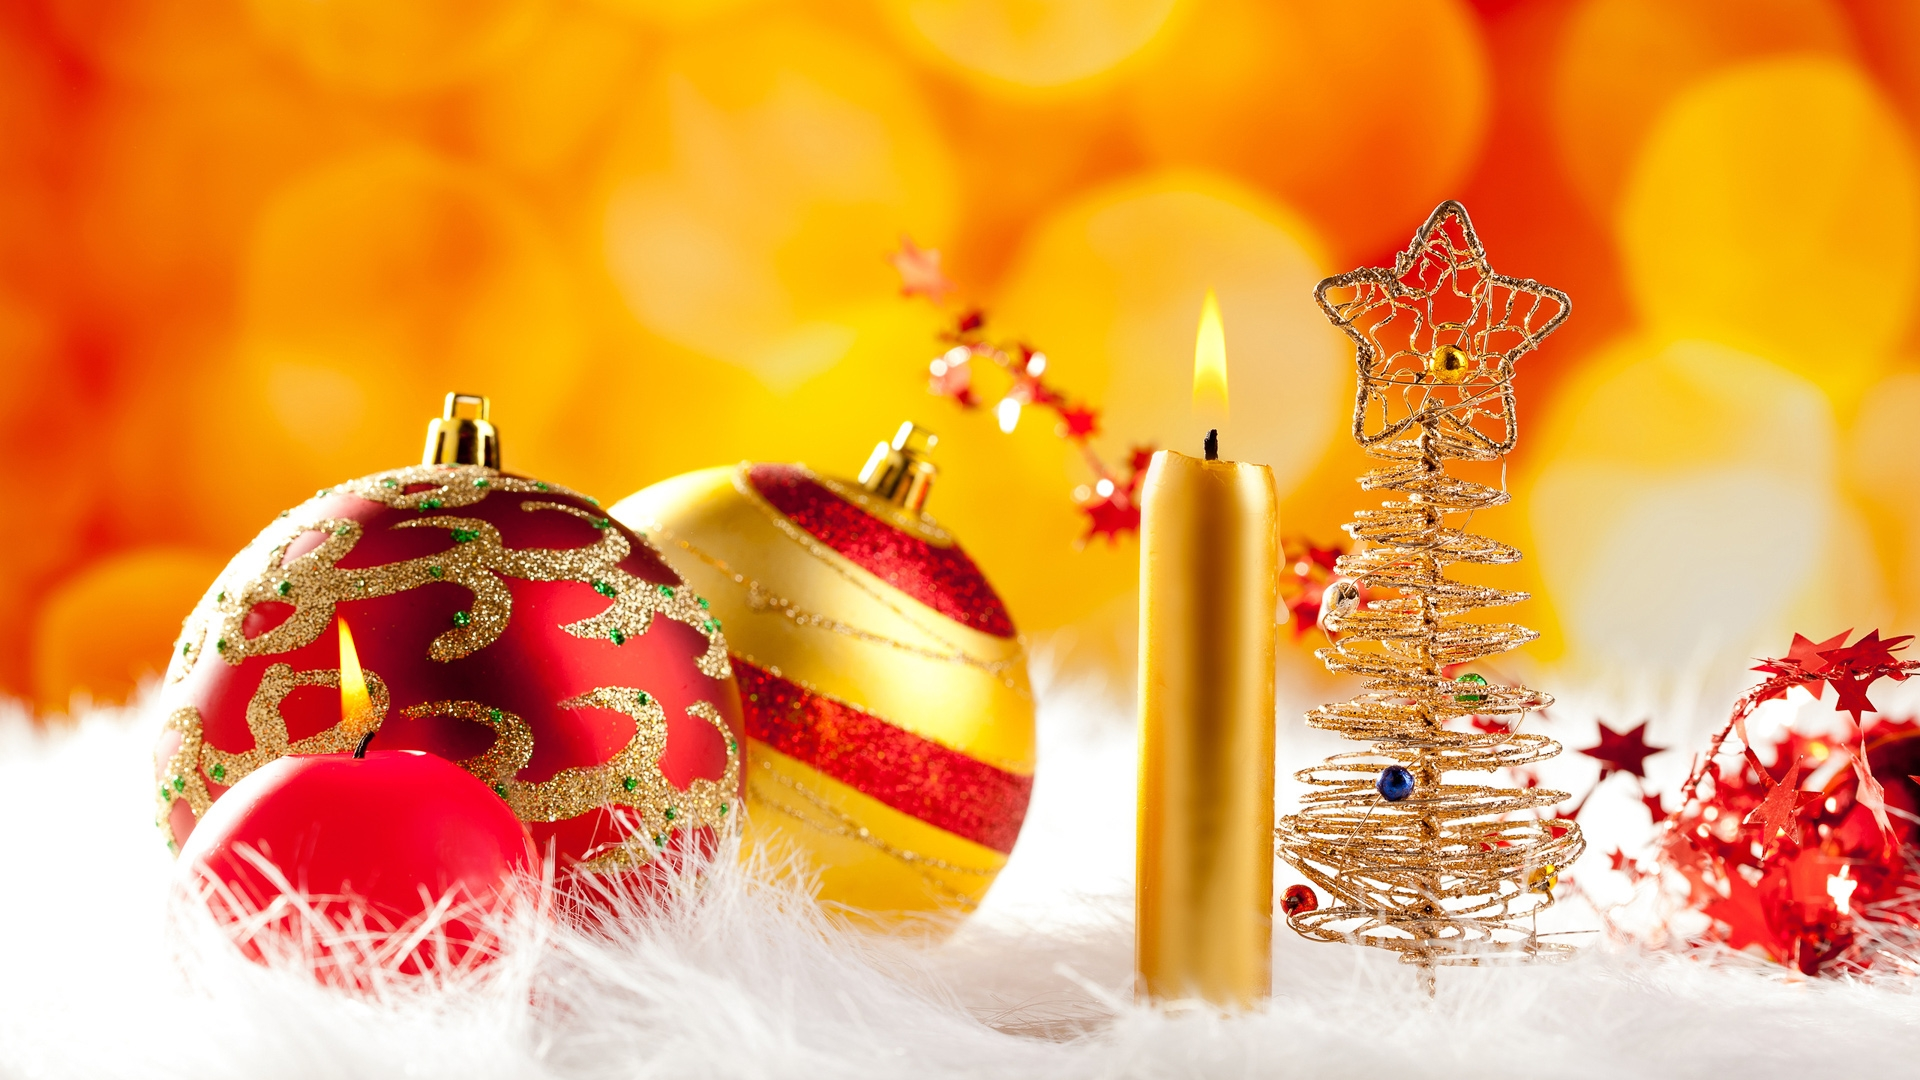 cool-balls-new-year-christmas-holiday-candles-wallpaper-wpc5803662